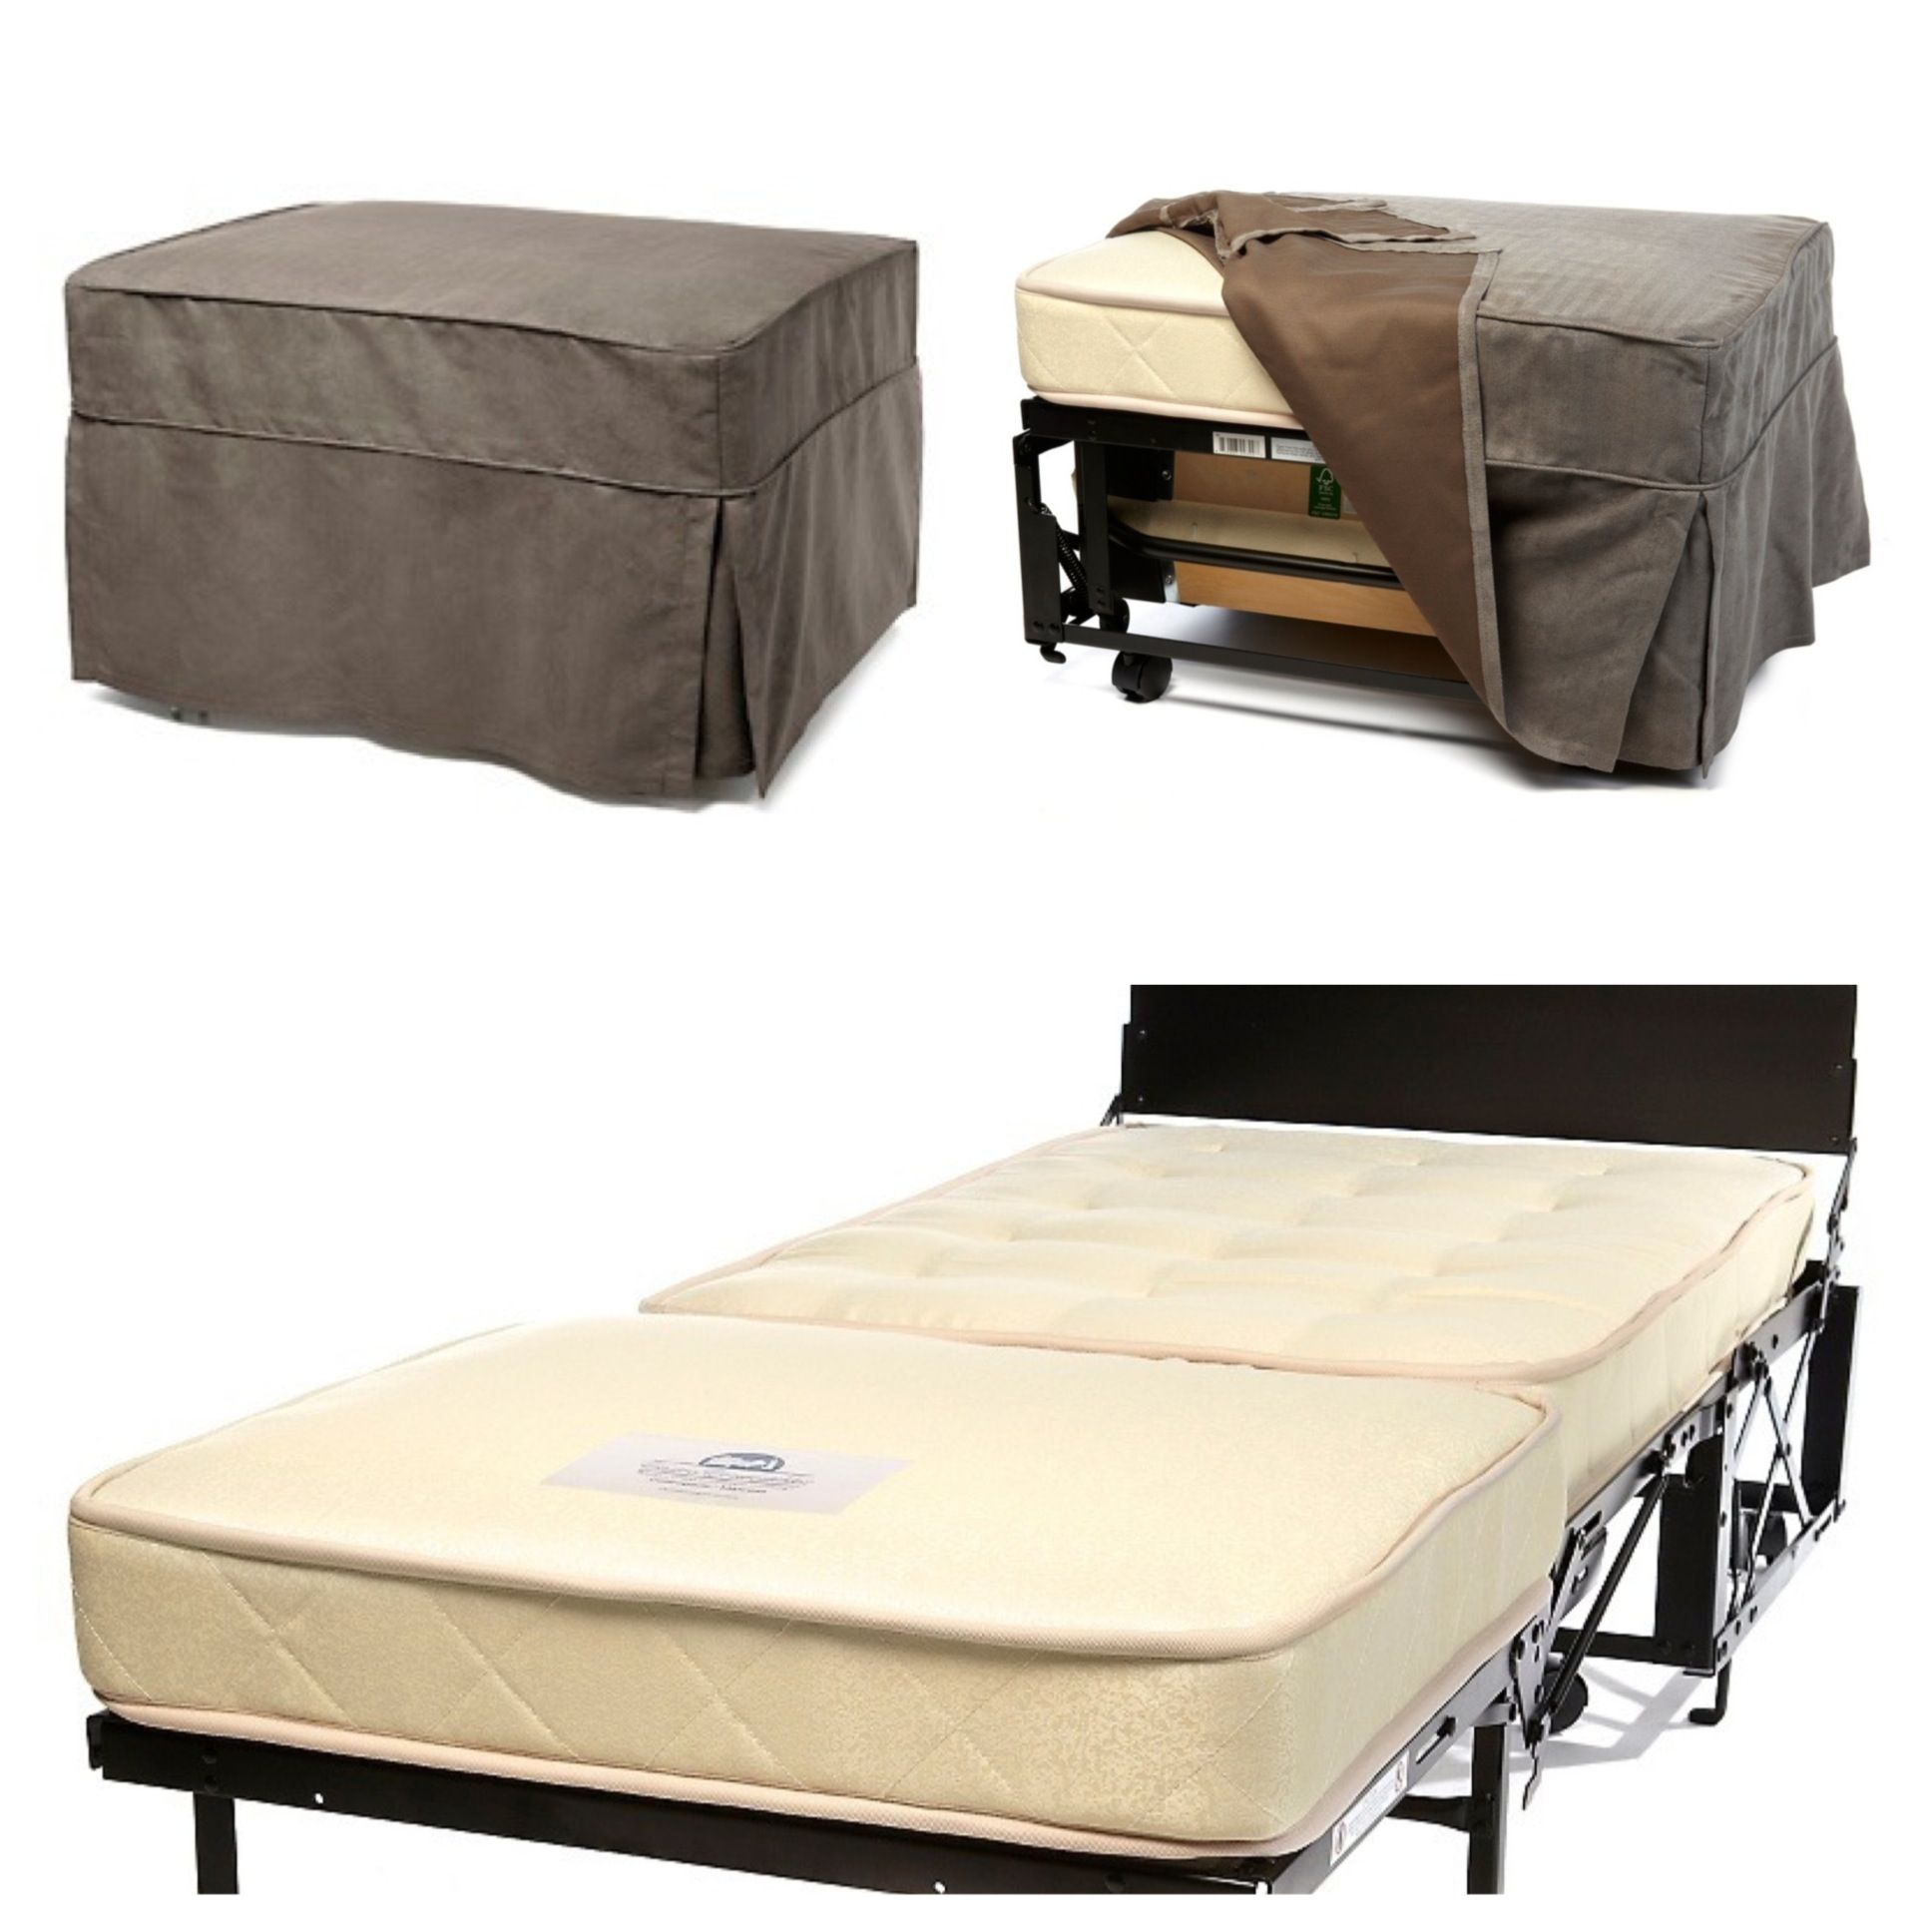 Castro Convertible Ottoman With Mattress I Love This Option